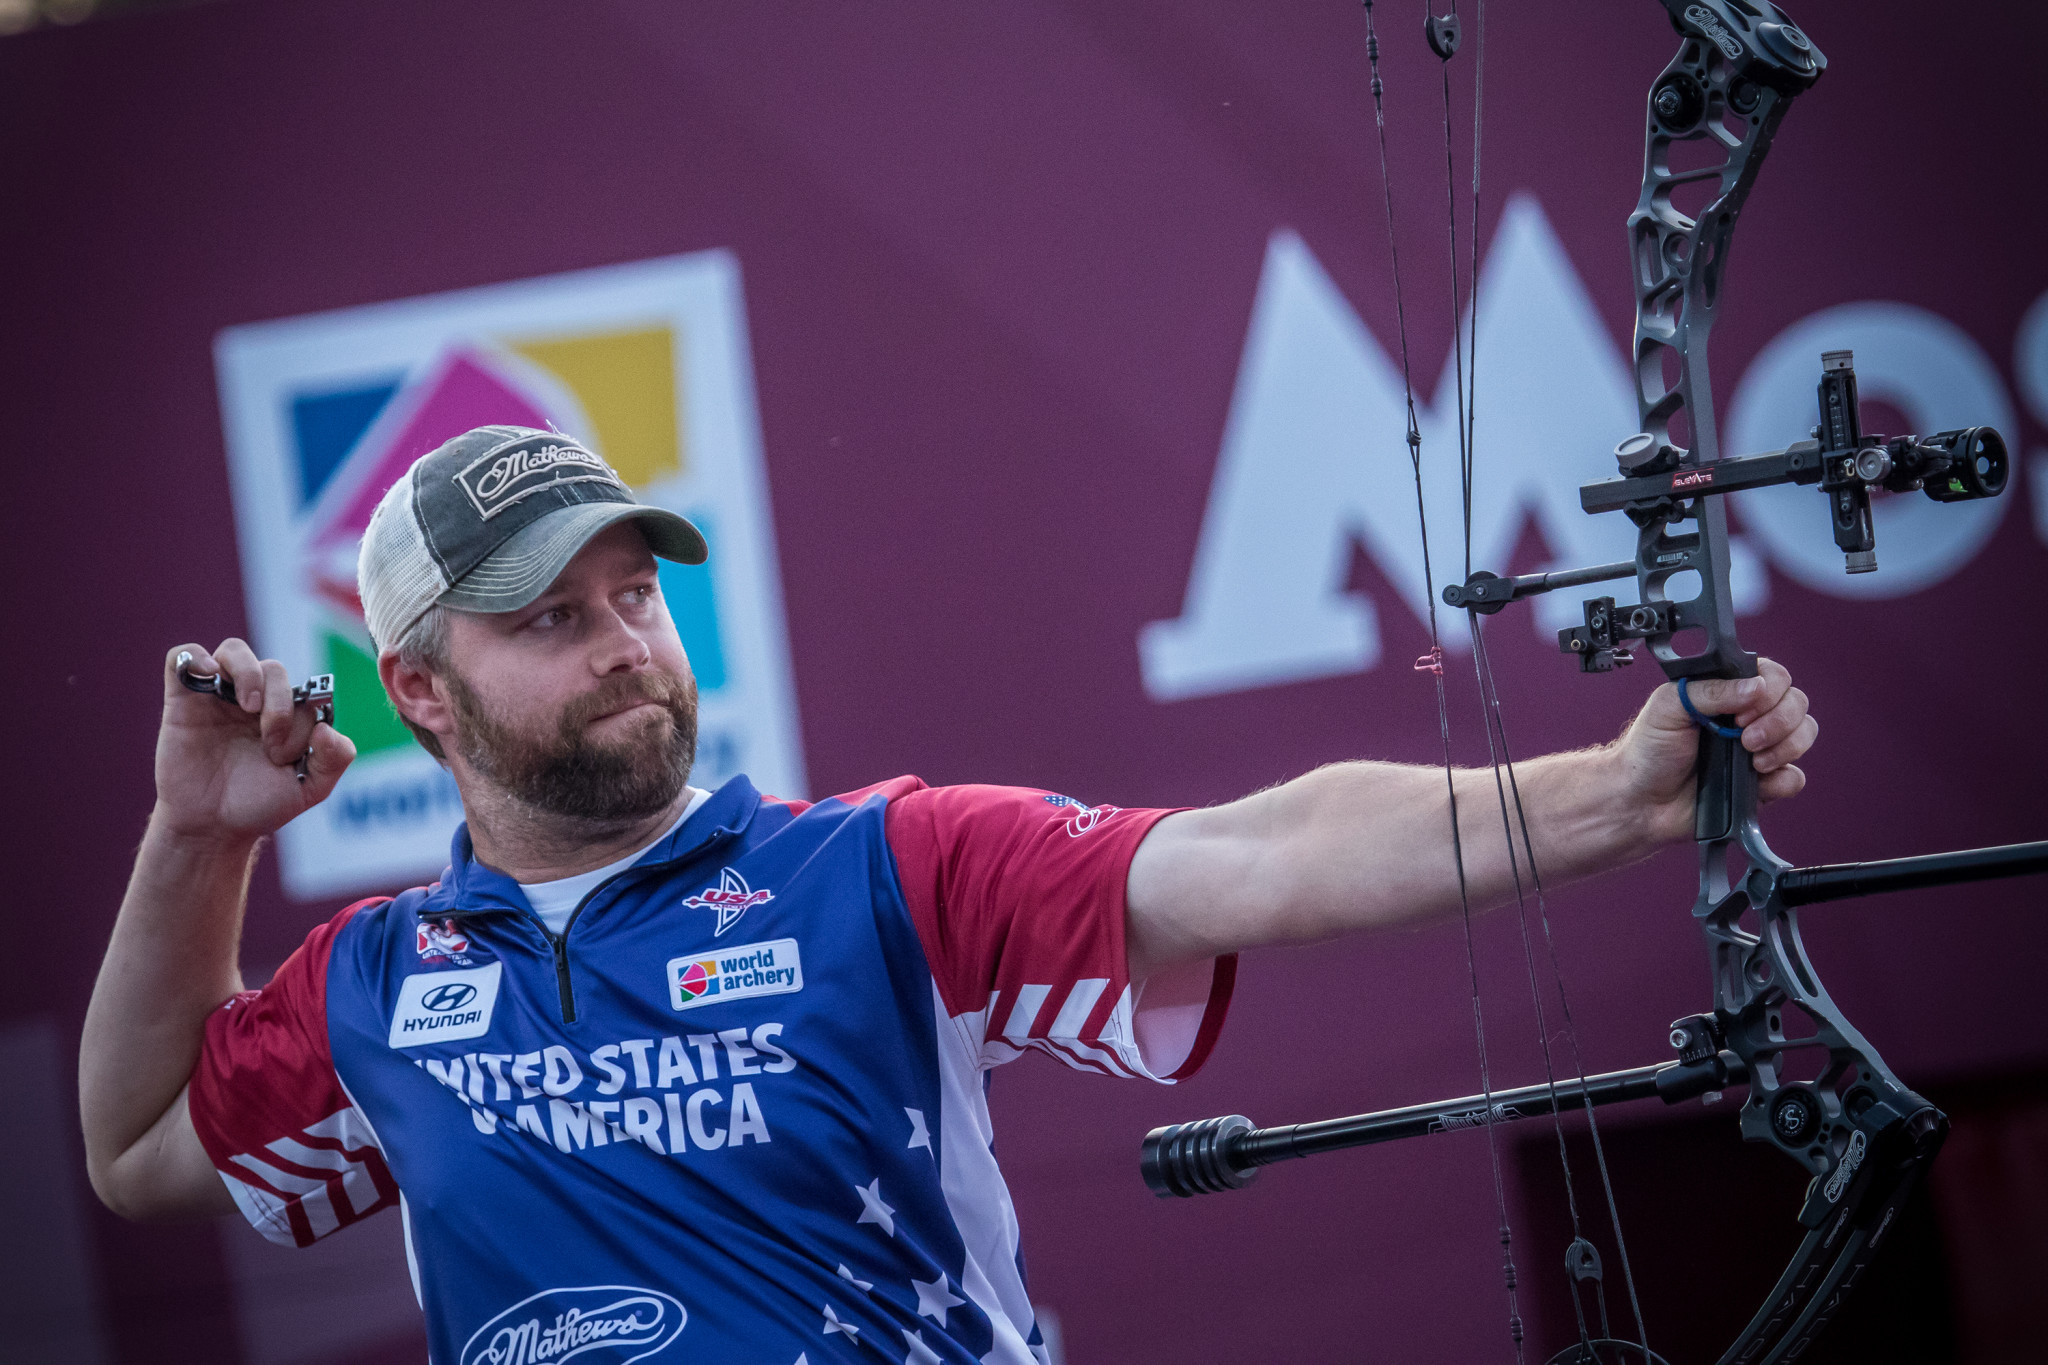 United States, Colombia and Germany win team bronze medals at Archery World Cup